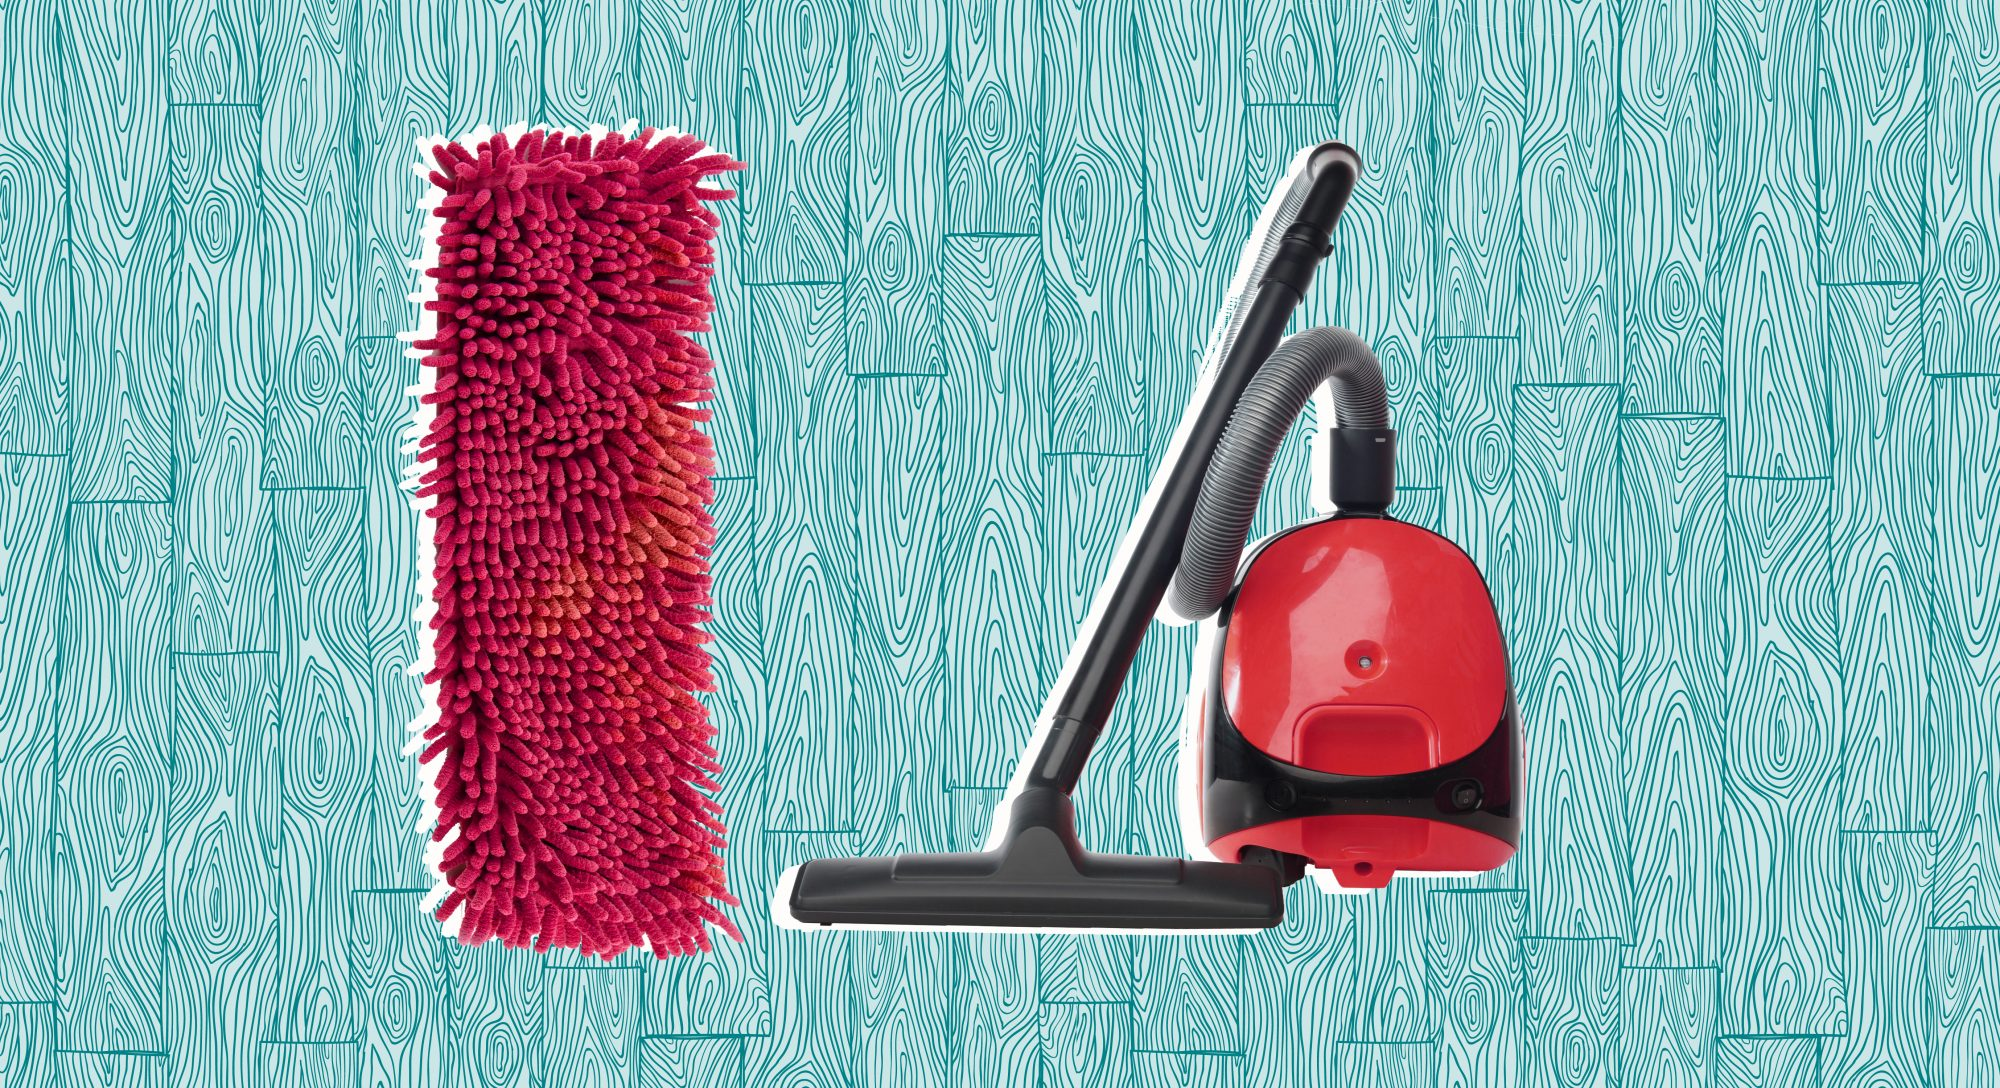 How to Keep Your Laminate Wood Floors Looking Shiny and New